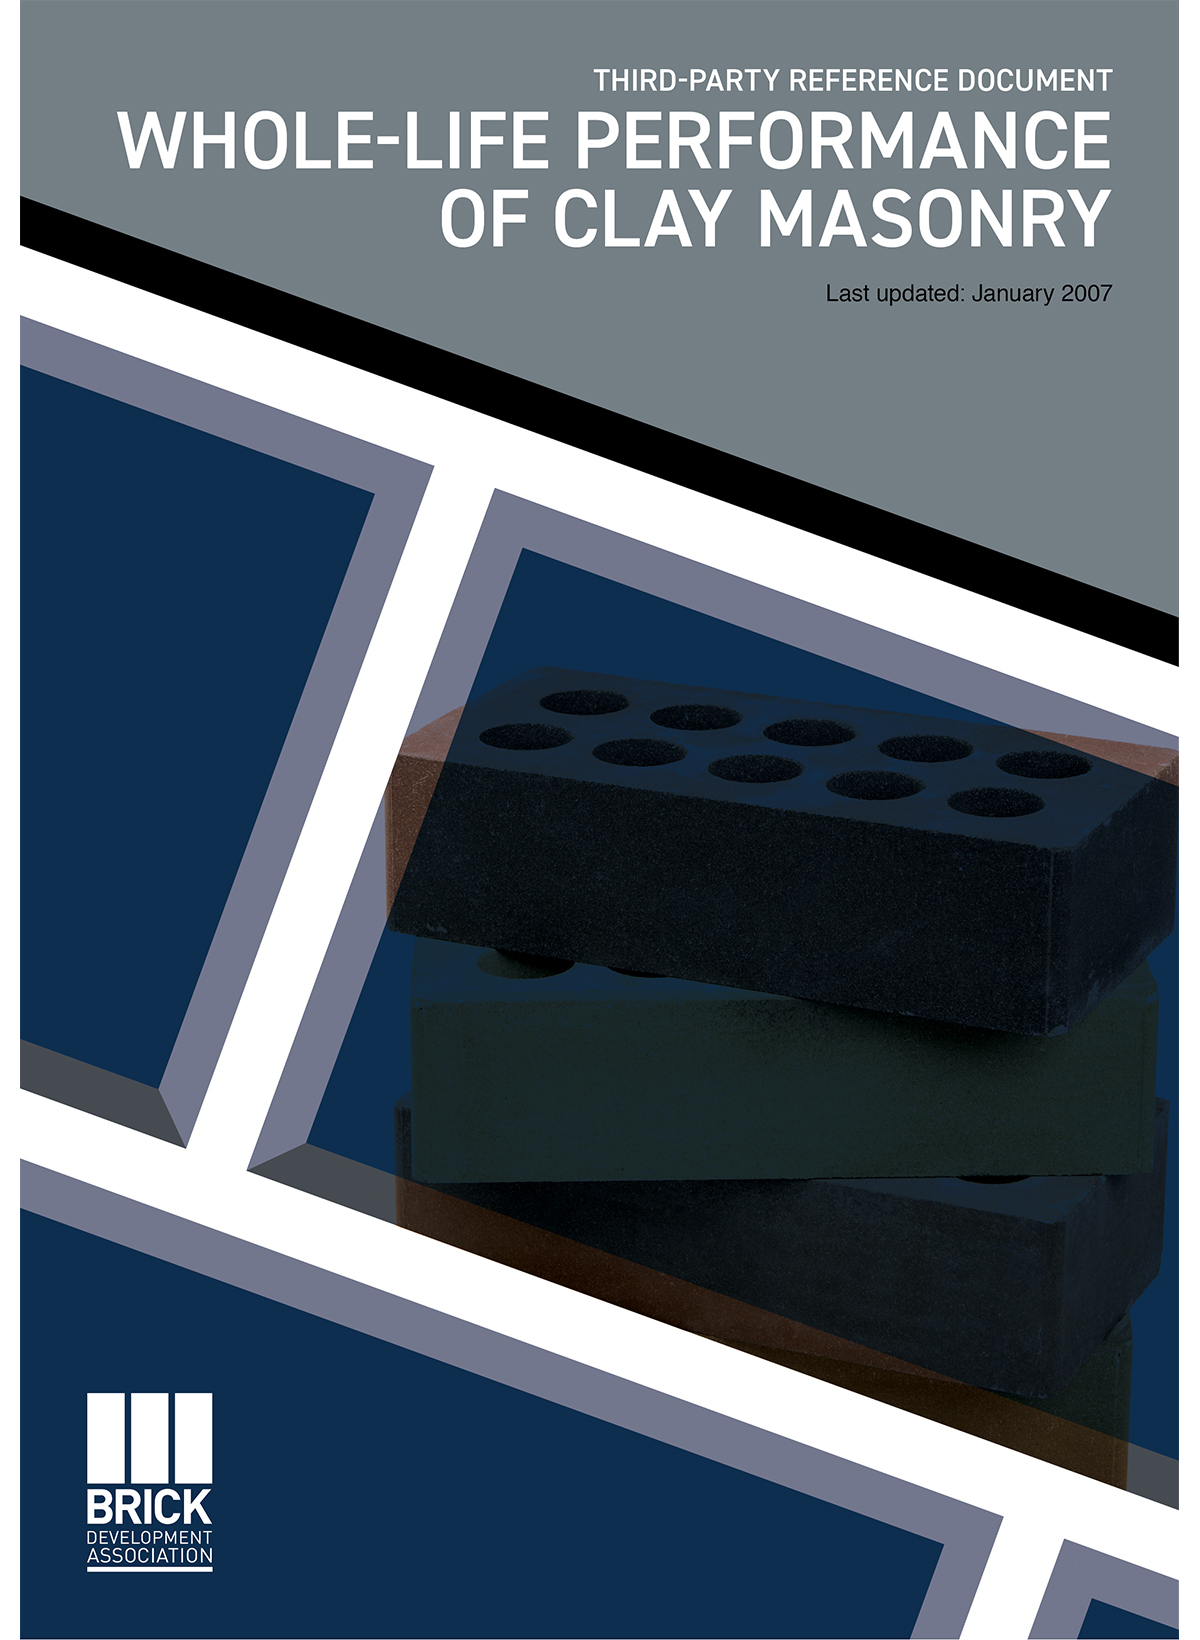 WHOLE-LIFE PERFORMANCE OF CLAY MASONRY